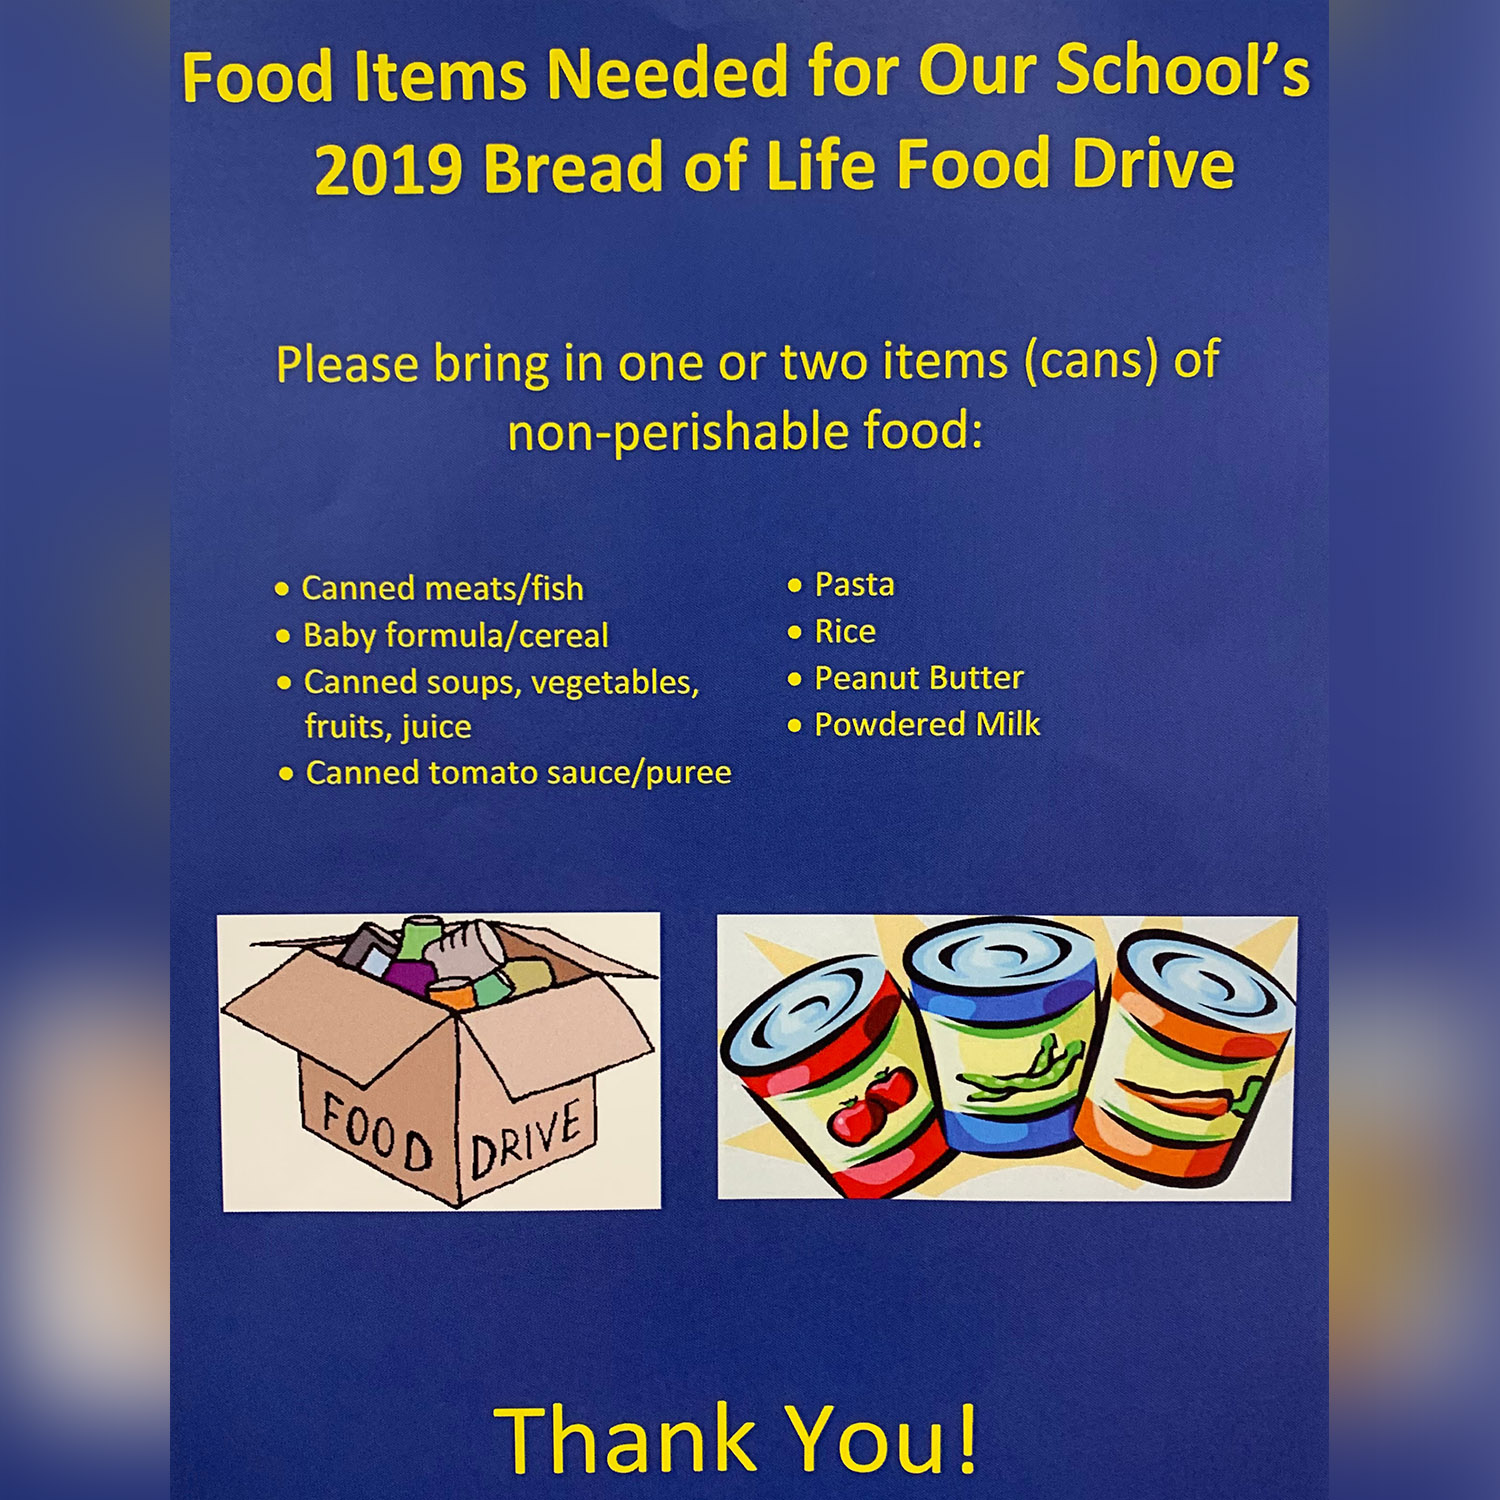 FOOD DRIVE SQ copy.jpg